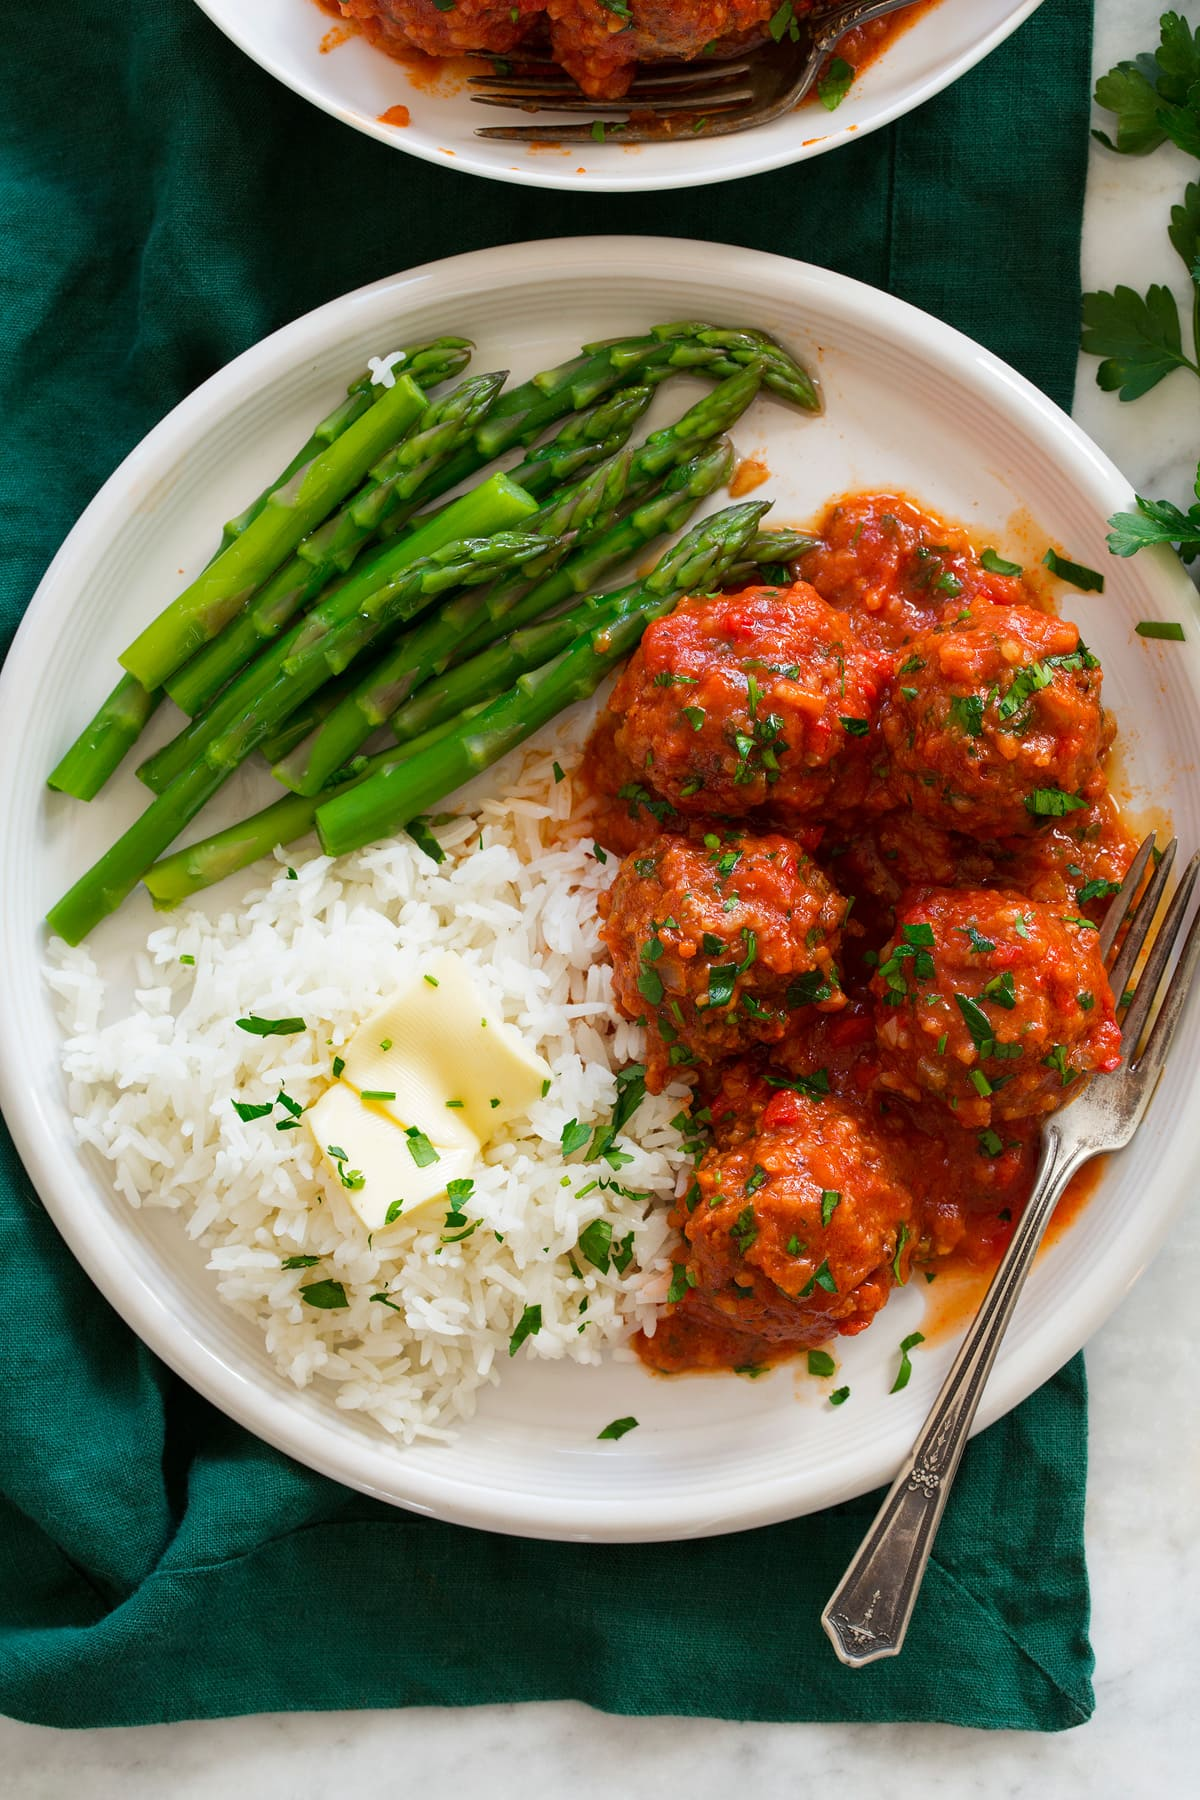 Overhead photo of Porcupine Meatballs meatballs on a plate with rice and asparagus.